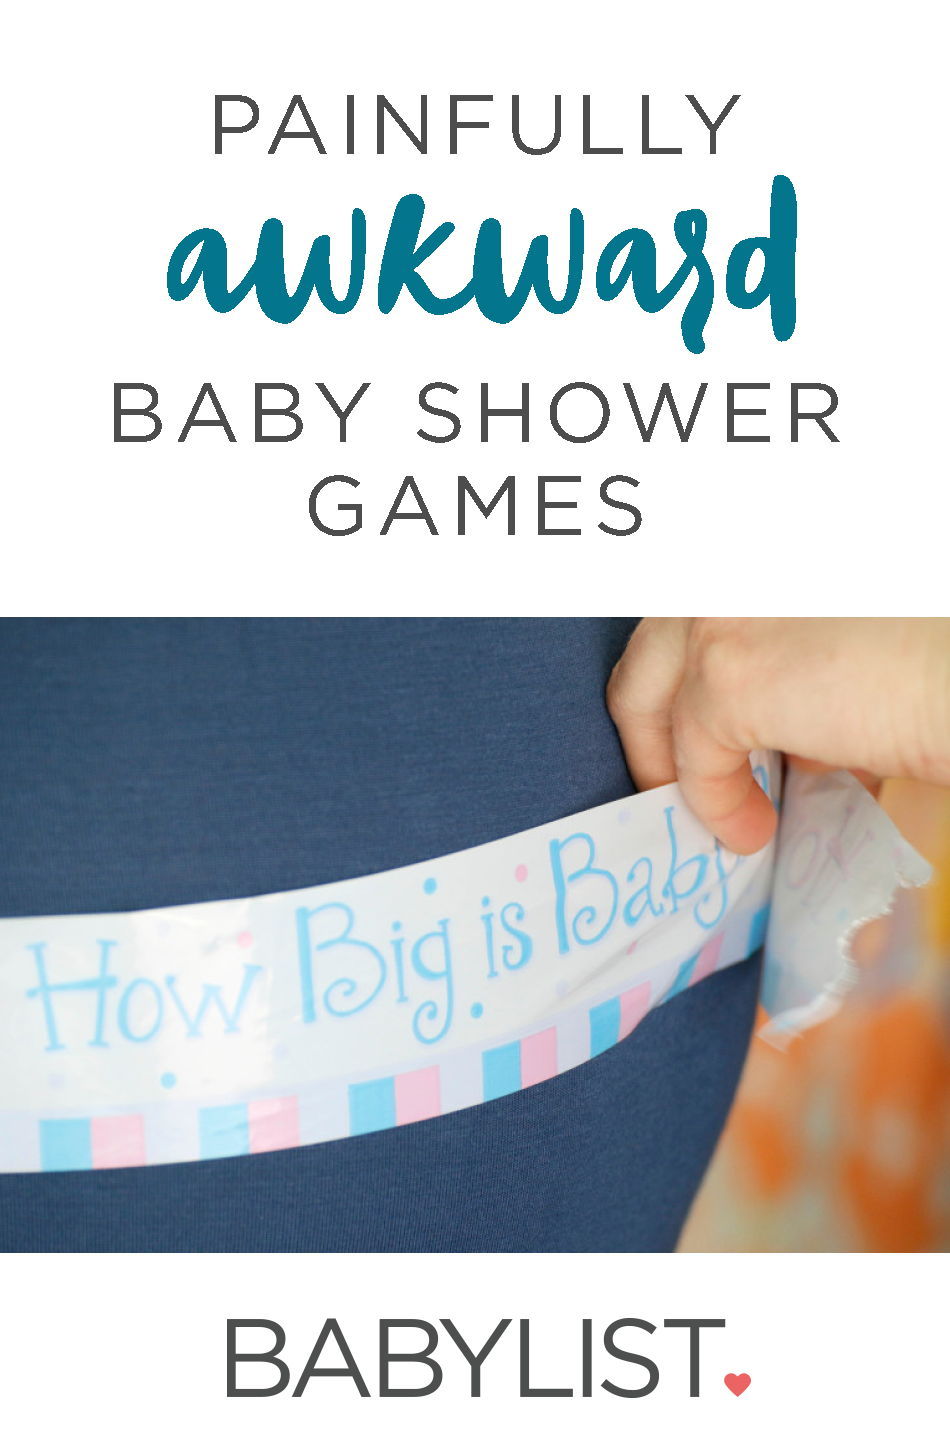 These Baby Shower Games Are The Ones You Most Want To Avoid.